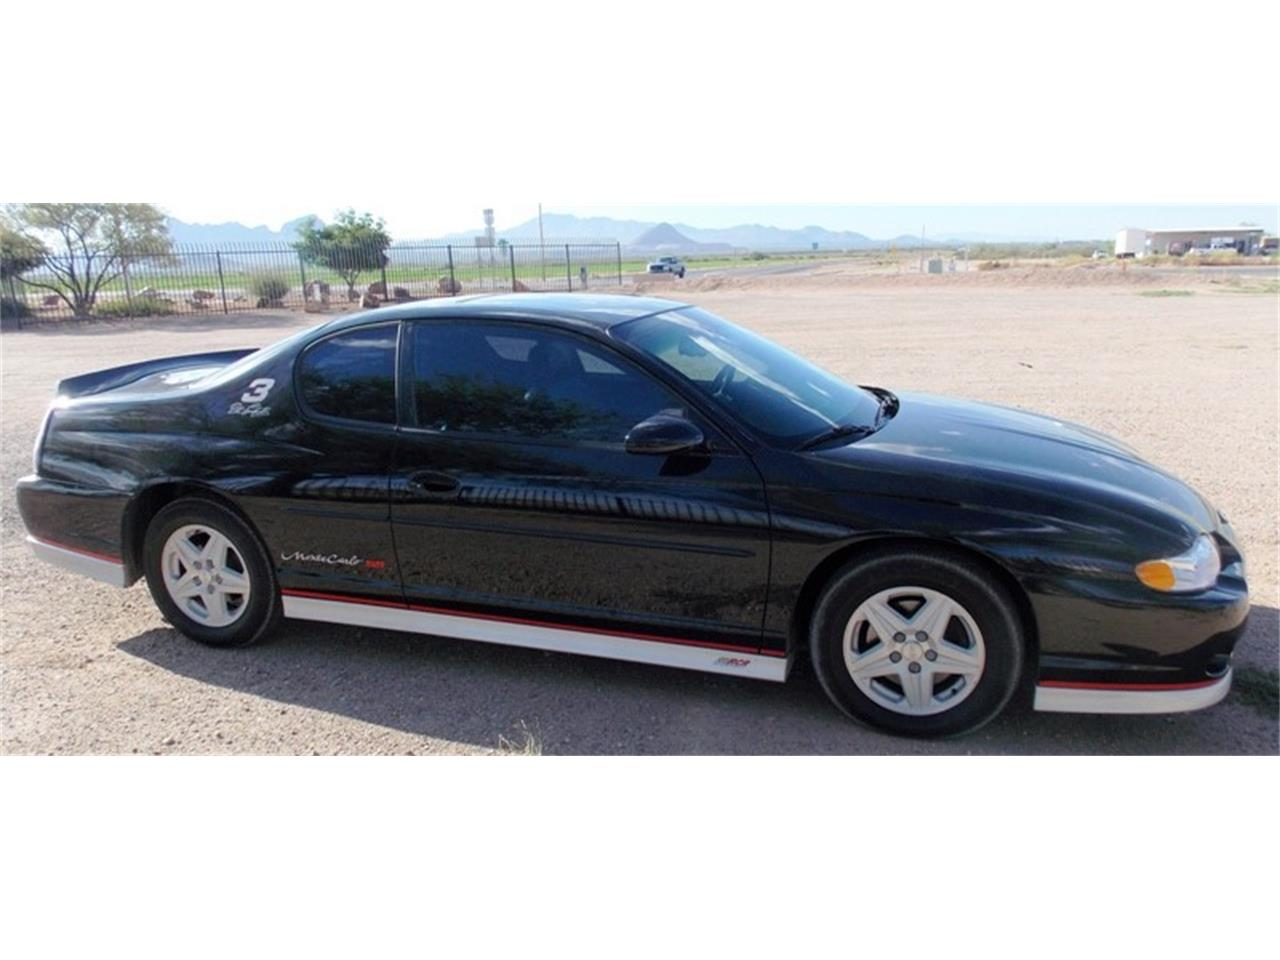 Large Picture of 2002 Chevrolet Monte Carlo SS Intimidator located in AZ - Arizona Offered by Old Iron AZ LLC - QWDS